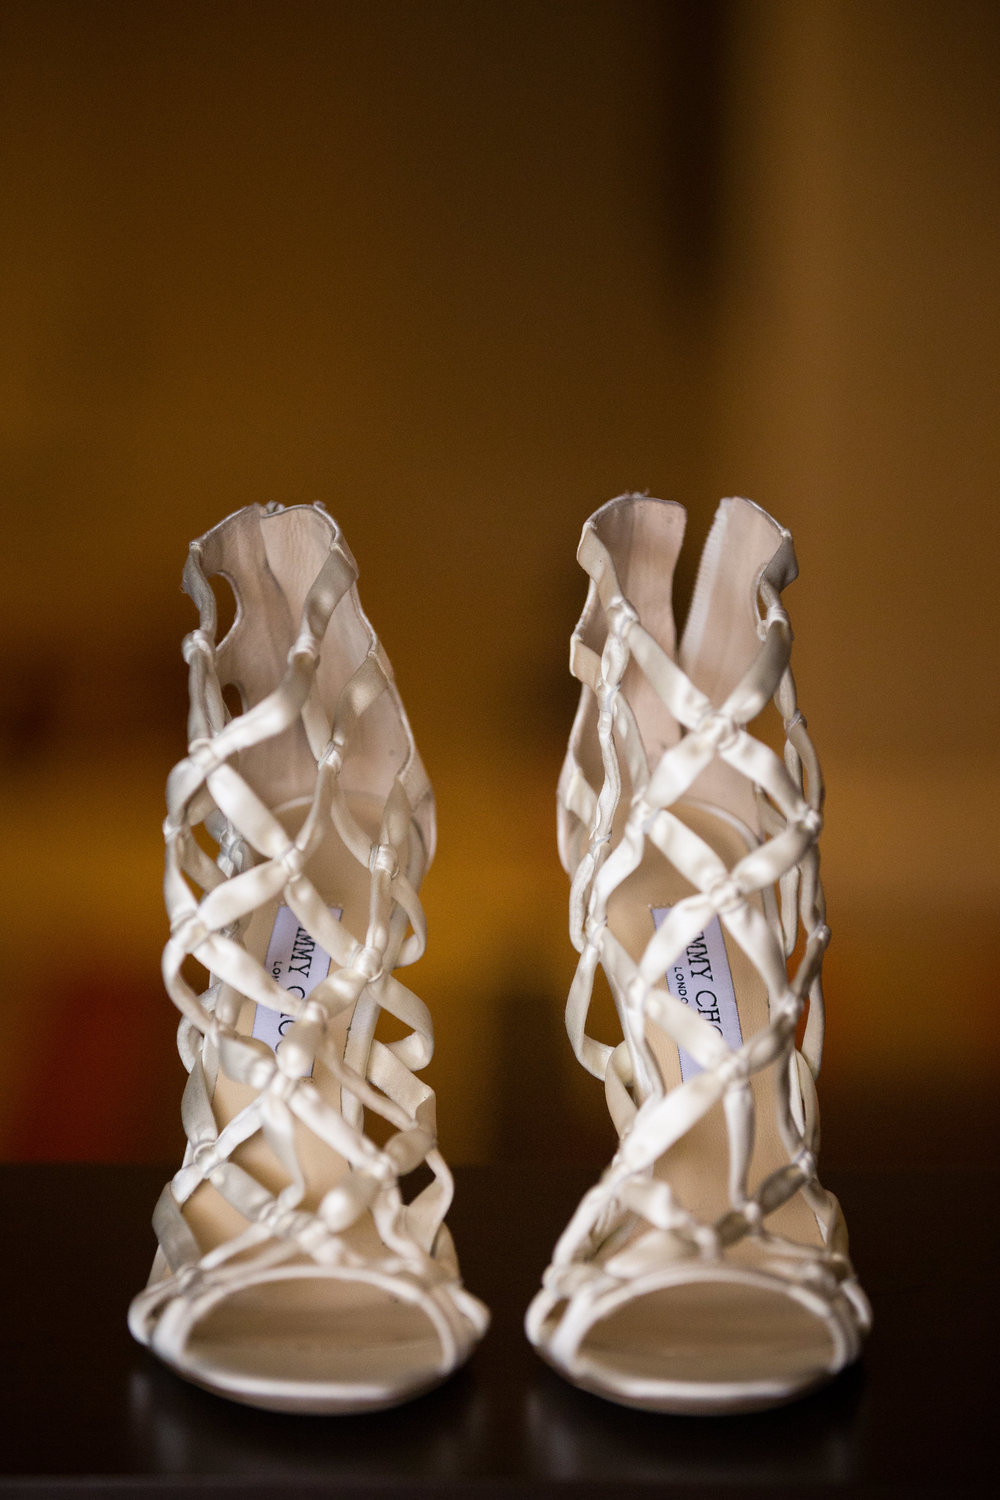 Jimmy Choo satin cage sandels.  Wedding Planner:  Andrea Eppolito Events   |   Photography  D2 Tuscan Wedding Photography   |  Videography  M Place Productions   |  Venue & Catering:  Bellagio   |  Floral & Decor:  Destinations by Design    |  Lighting:  LED Unplugged   |  Music: Classical Entertainment &  DJ Mike Fox   |  Hair & Make Up:  Amelia C & Co